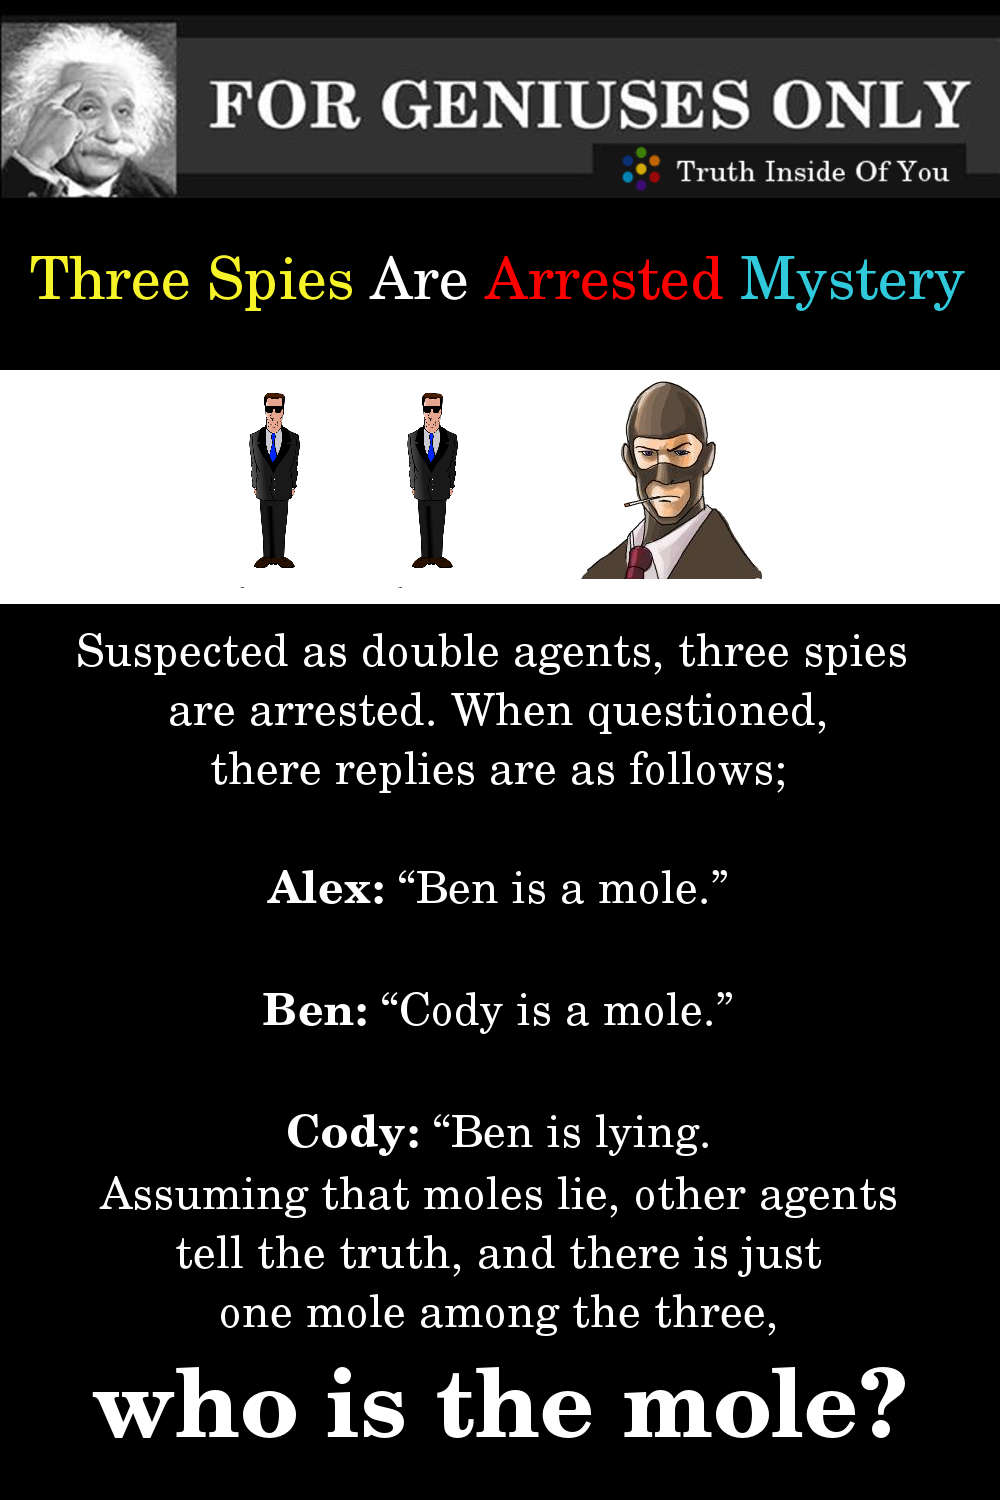 Riddle: Three Spies Are Arrested Mystery